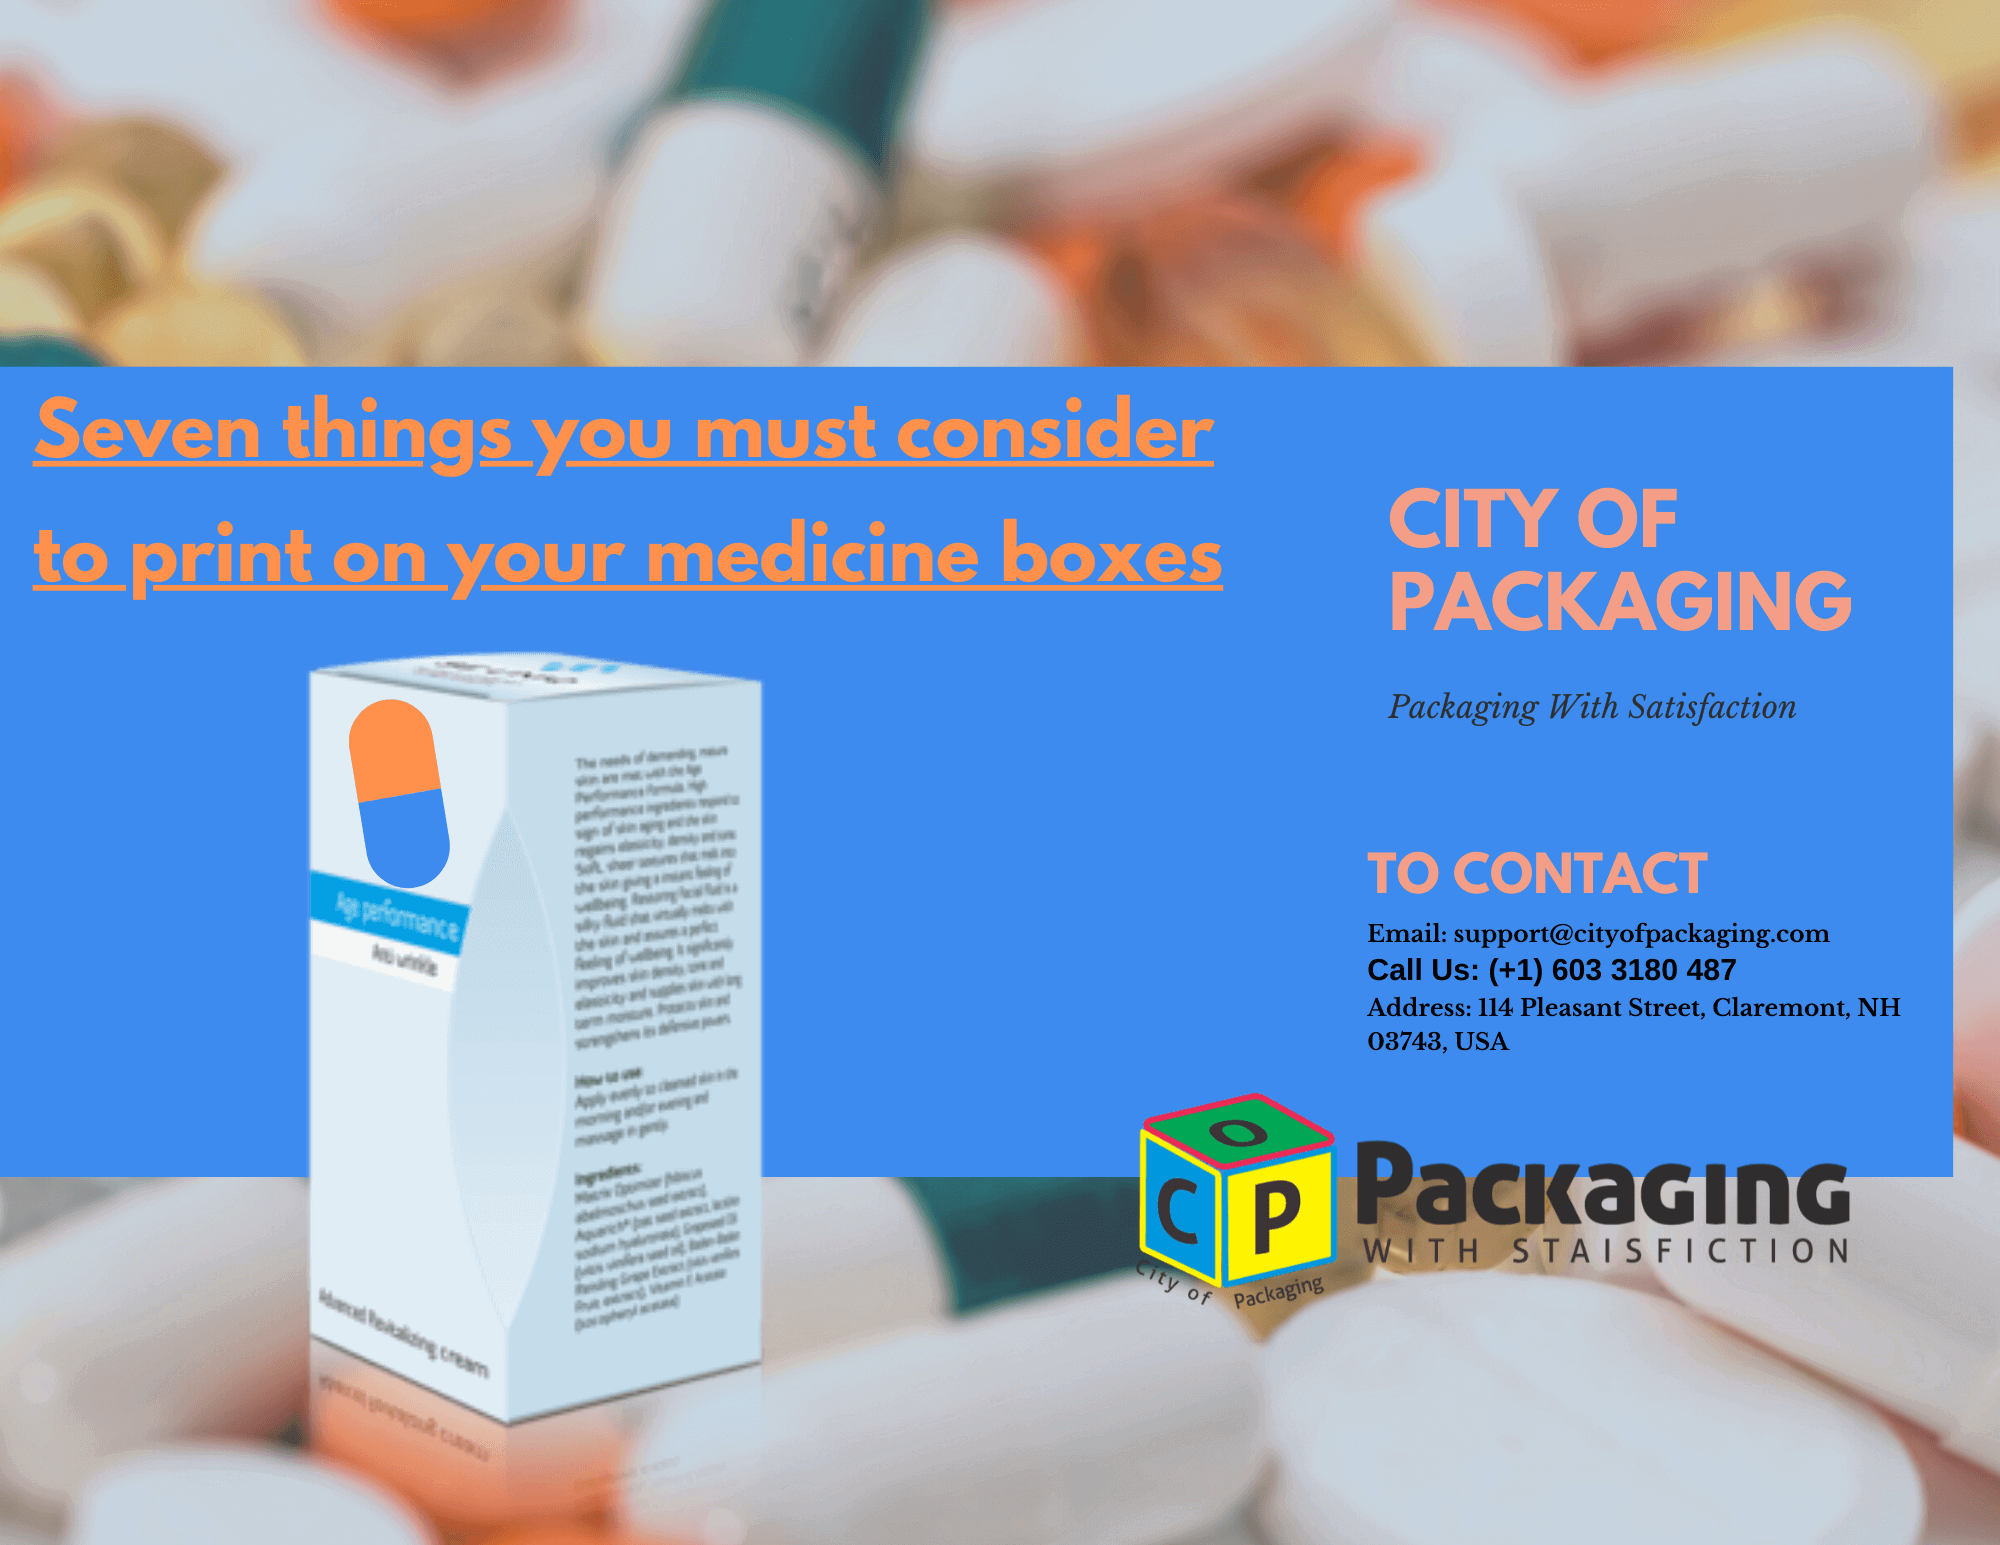 Seven things you must consider to print on your medicine boxes